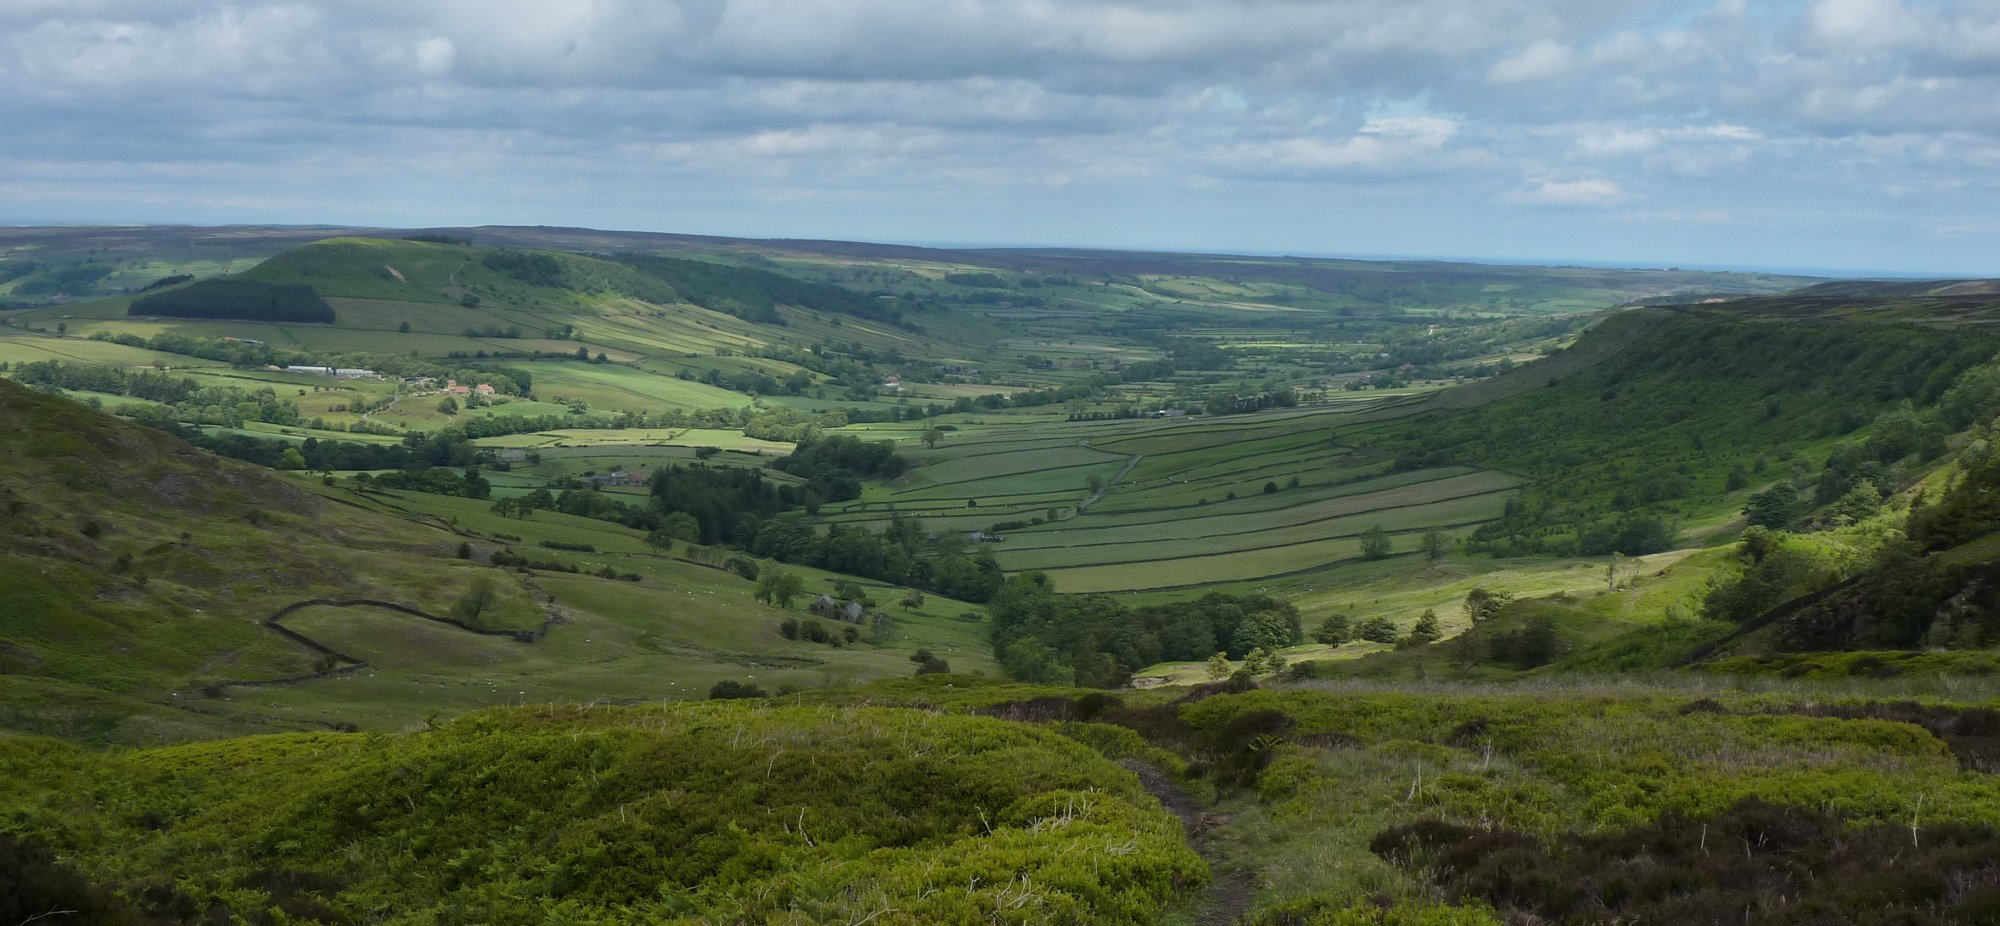 Looking down into Great Fryup Dale